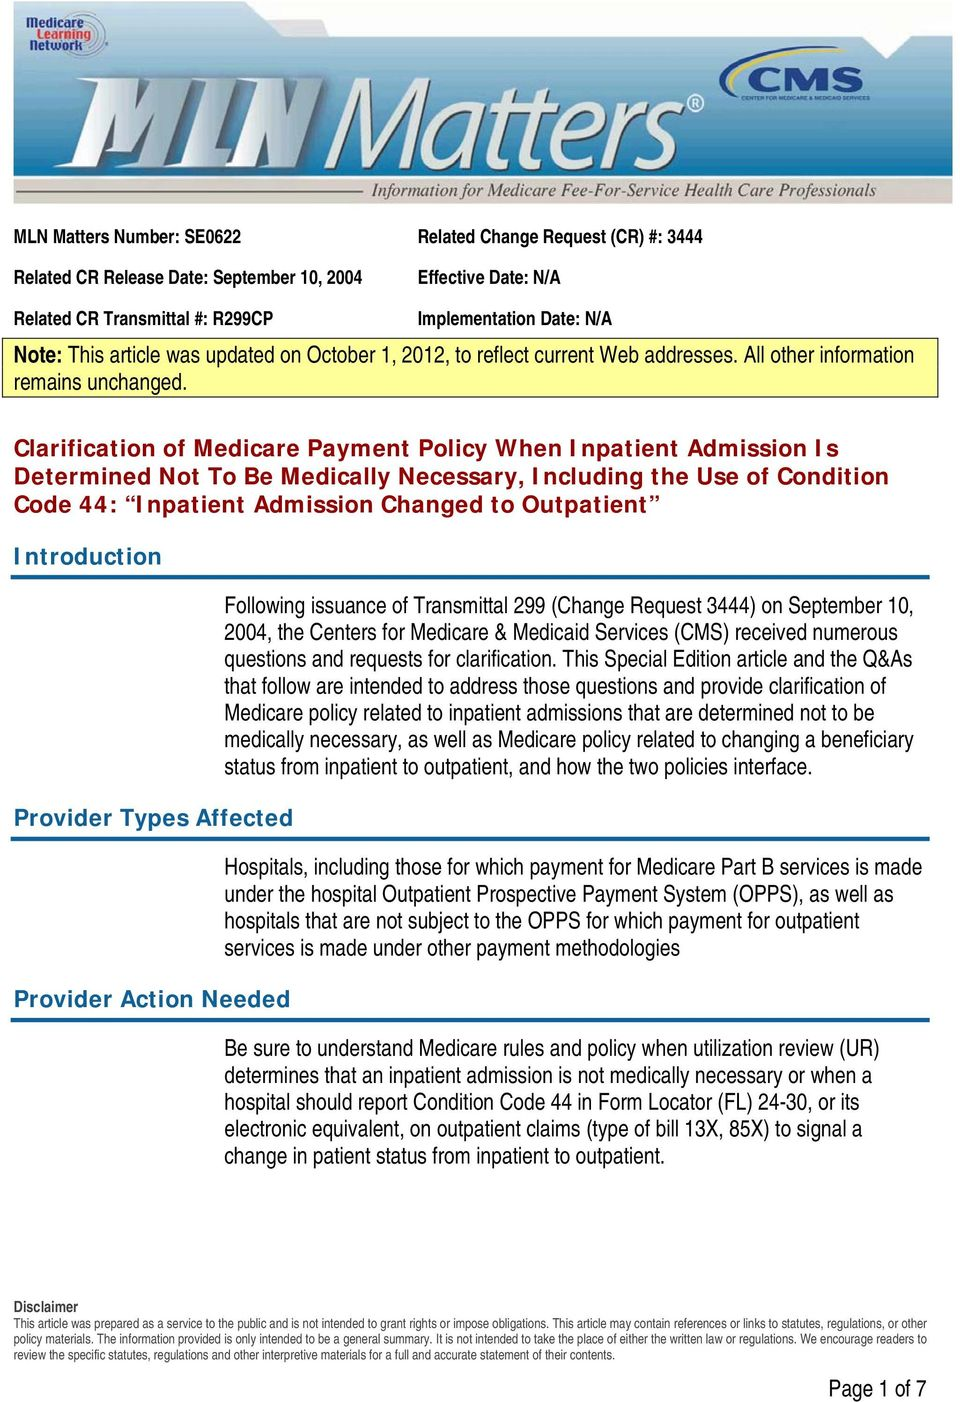 Clarification of Medicare Payment Policy When Inpatient Admission Is Determined Not To Be Medically Necessary, Including the Use of Condition Code 44: Inpatient Admission Changed to Outpatient